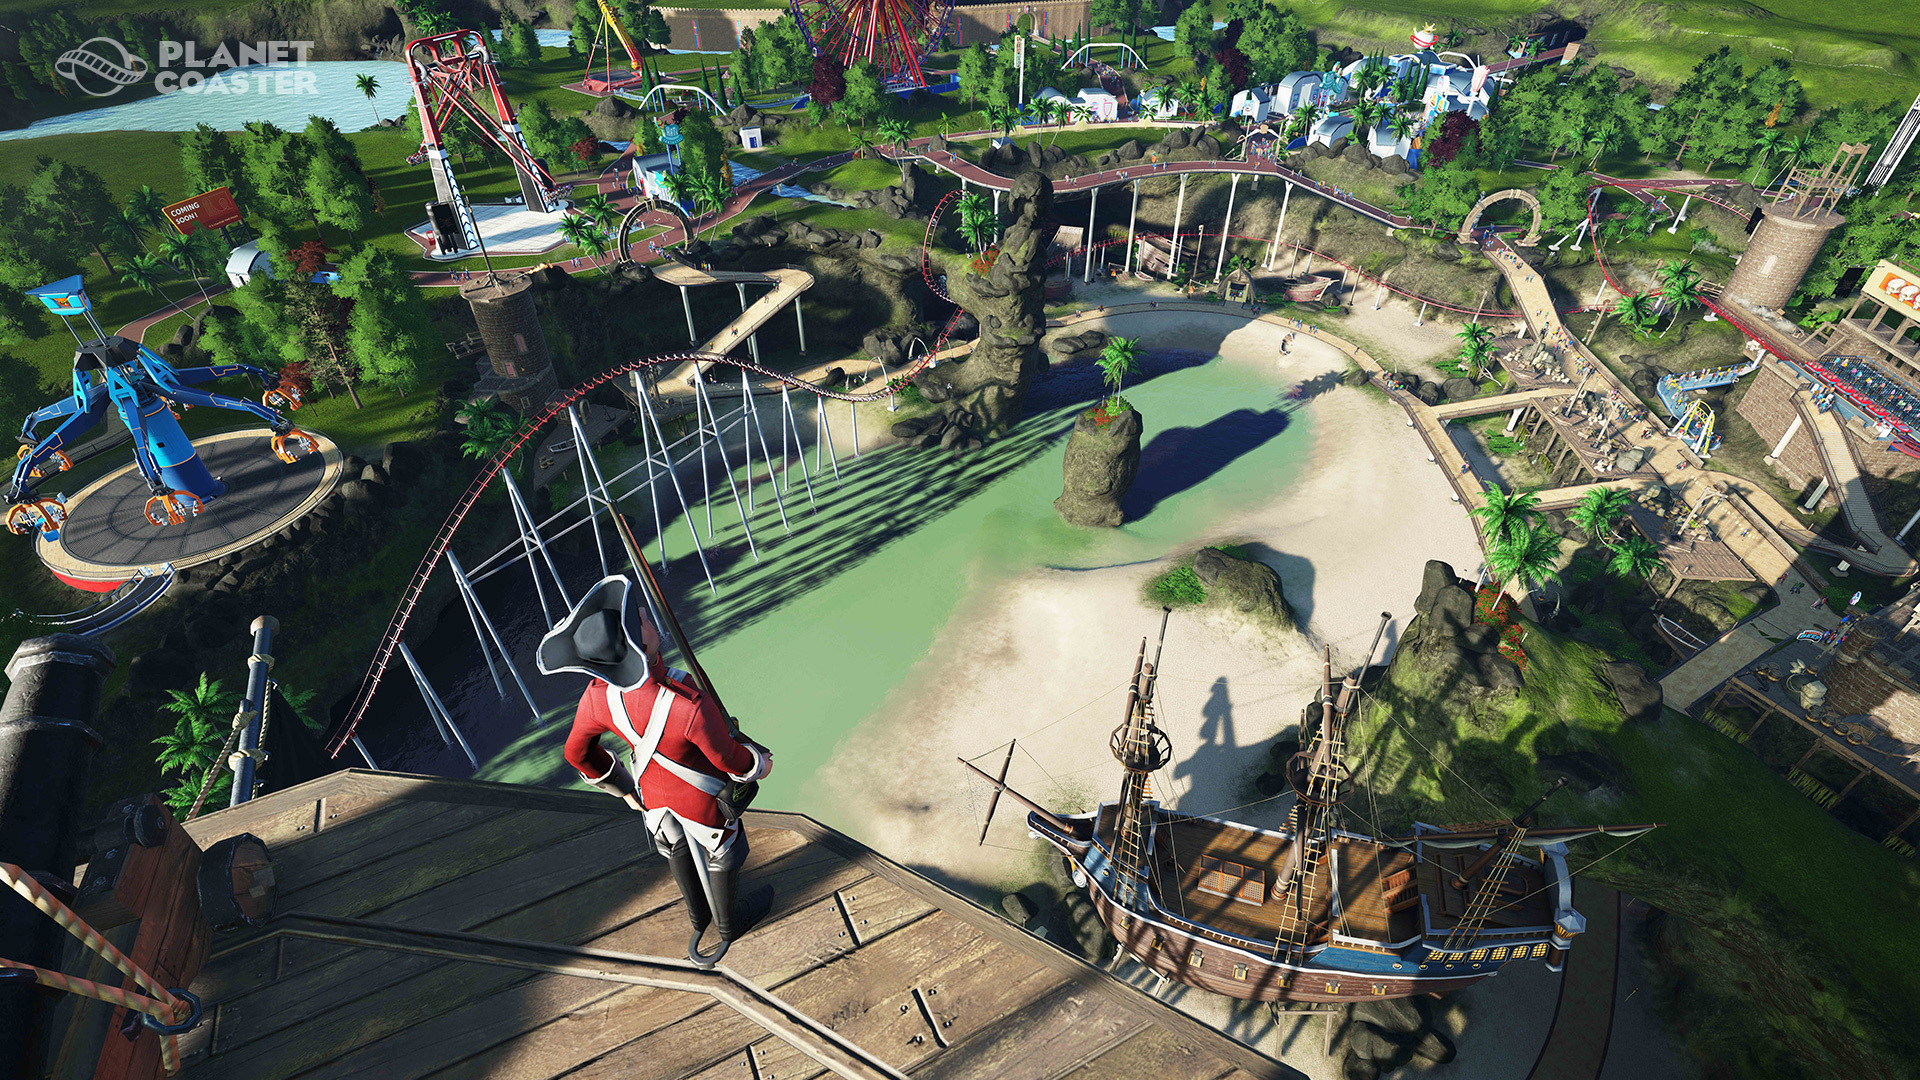 See RollerCoaster Tycoon Inspired Planet Coaster In Action ss 0a71684951f4ac4f0809e7adfc8a824f046ce6d3.1920x1080